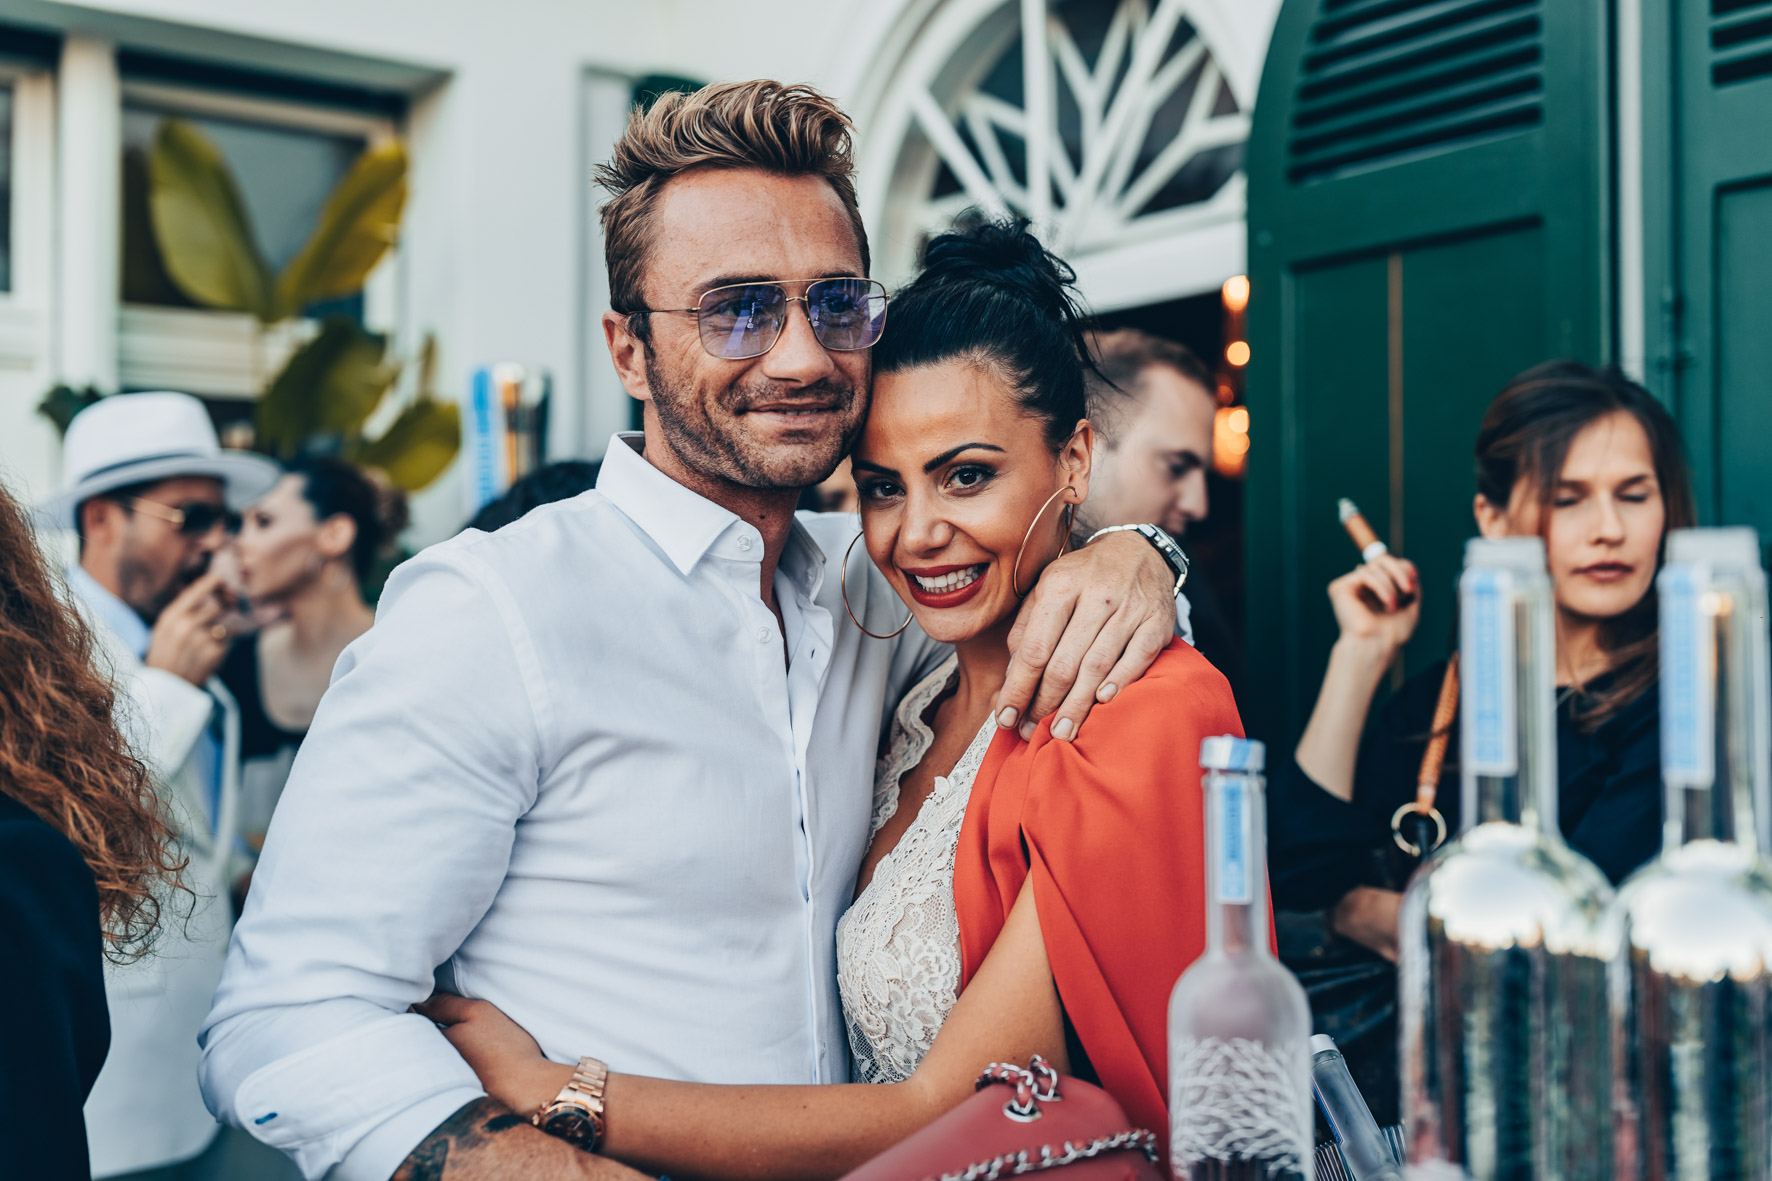 Konrad-lifestyle-art-basel-%22belvedere-secret-sunday%22-2019-114.jpg